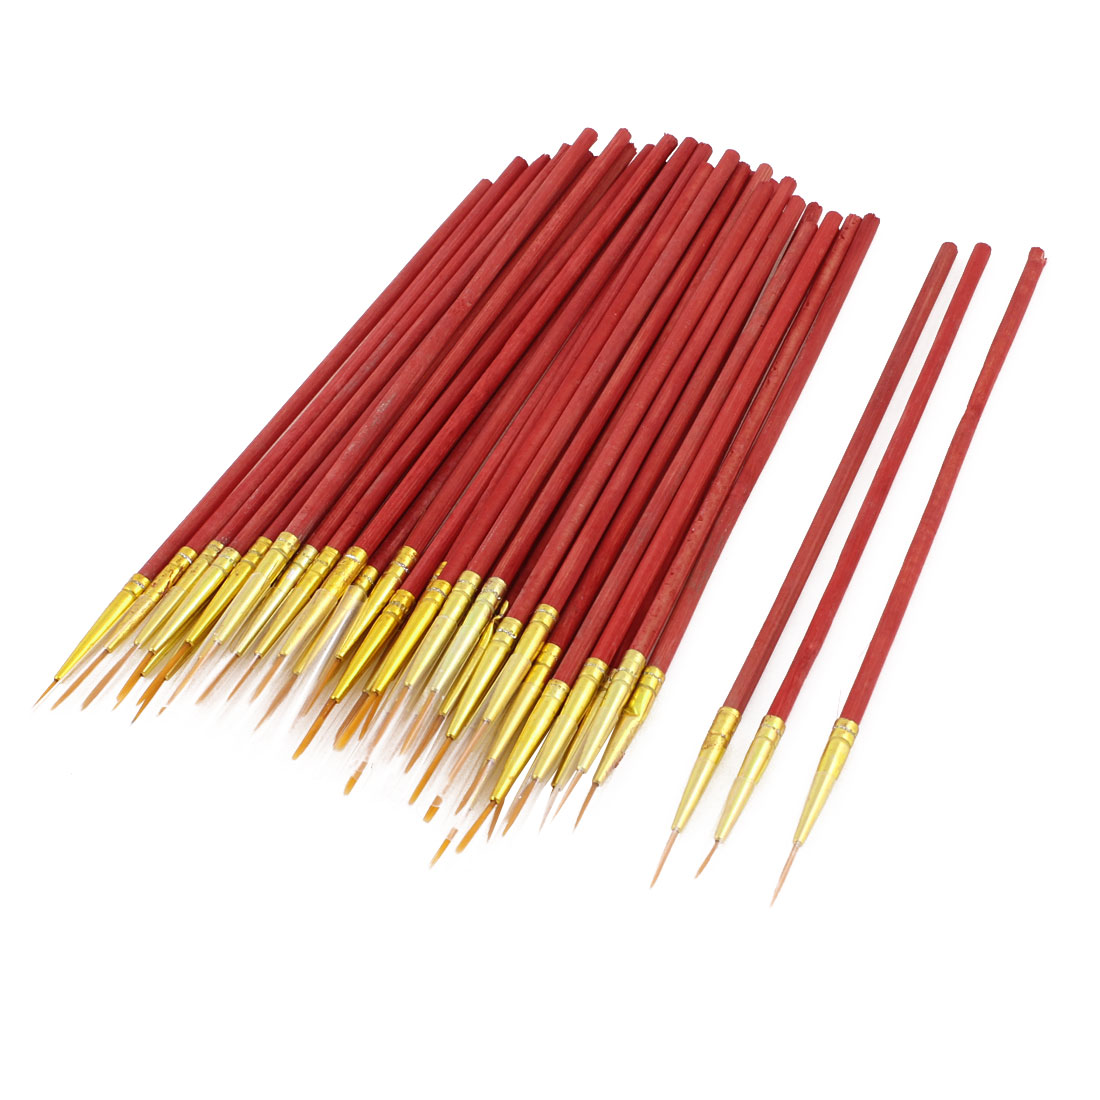 Red Wooden Shaft Small Size Watercolor Drawing Painting Brush 50pcs